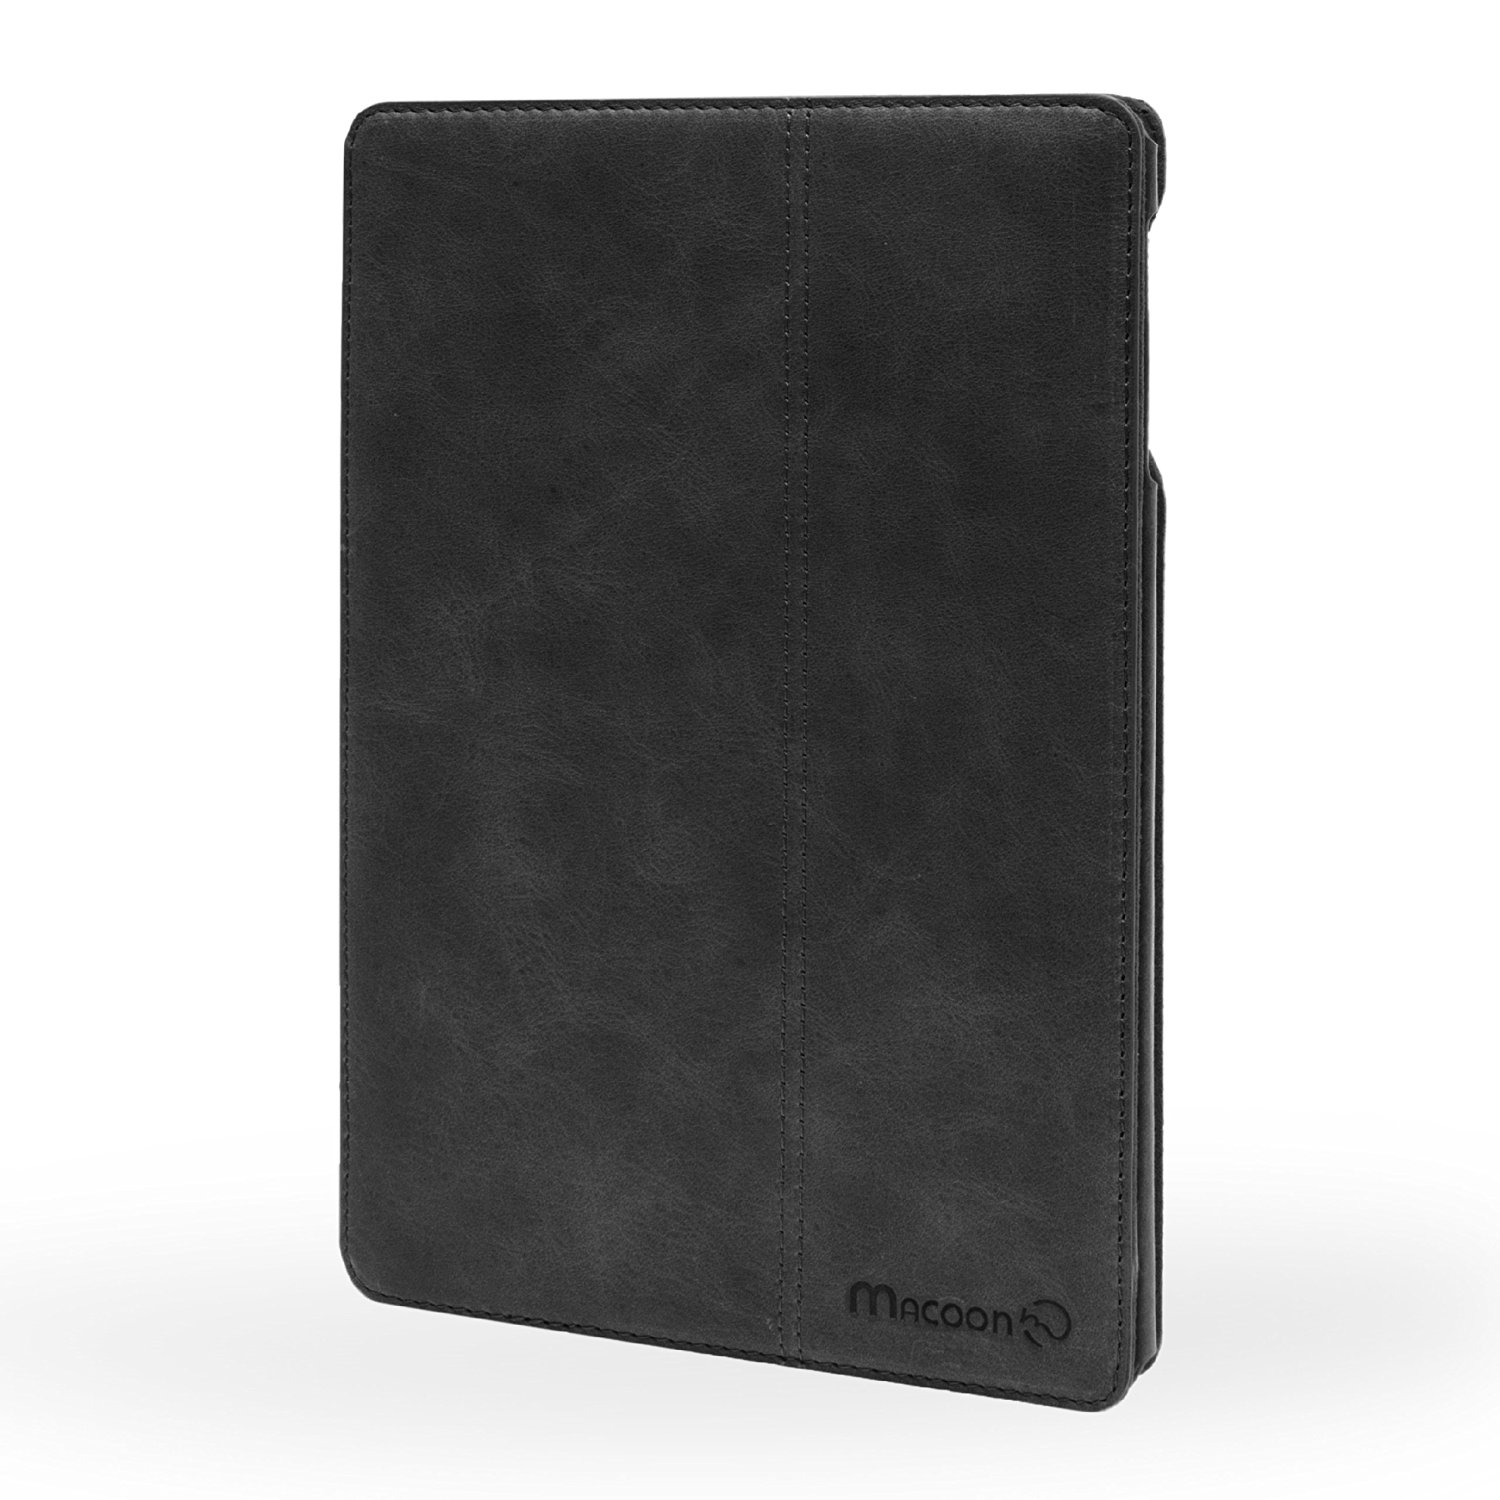 MACOON iPad Air 'Smart Traveler' leather case is made of 100% cowhide genuine leather case shell sleeve, color: black